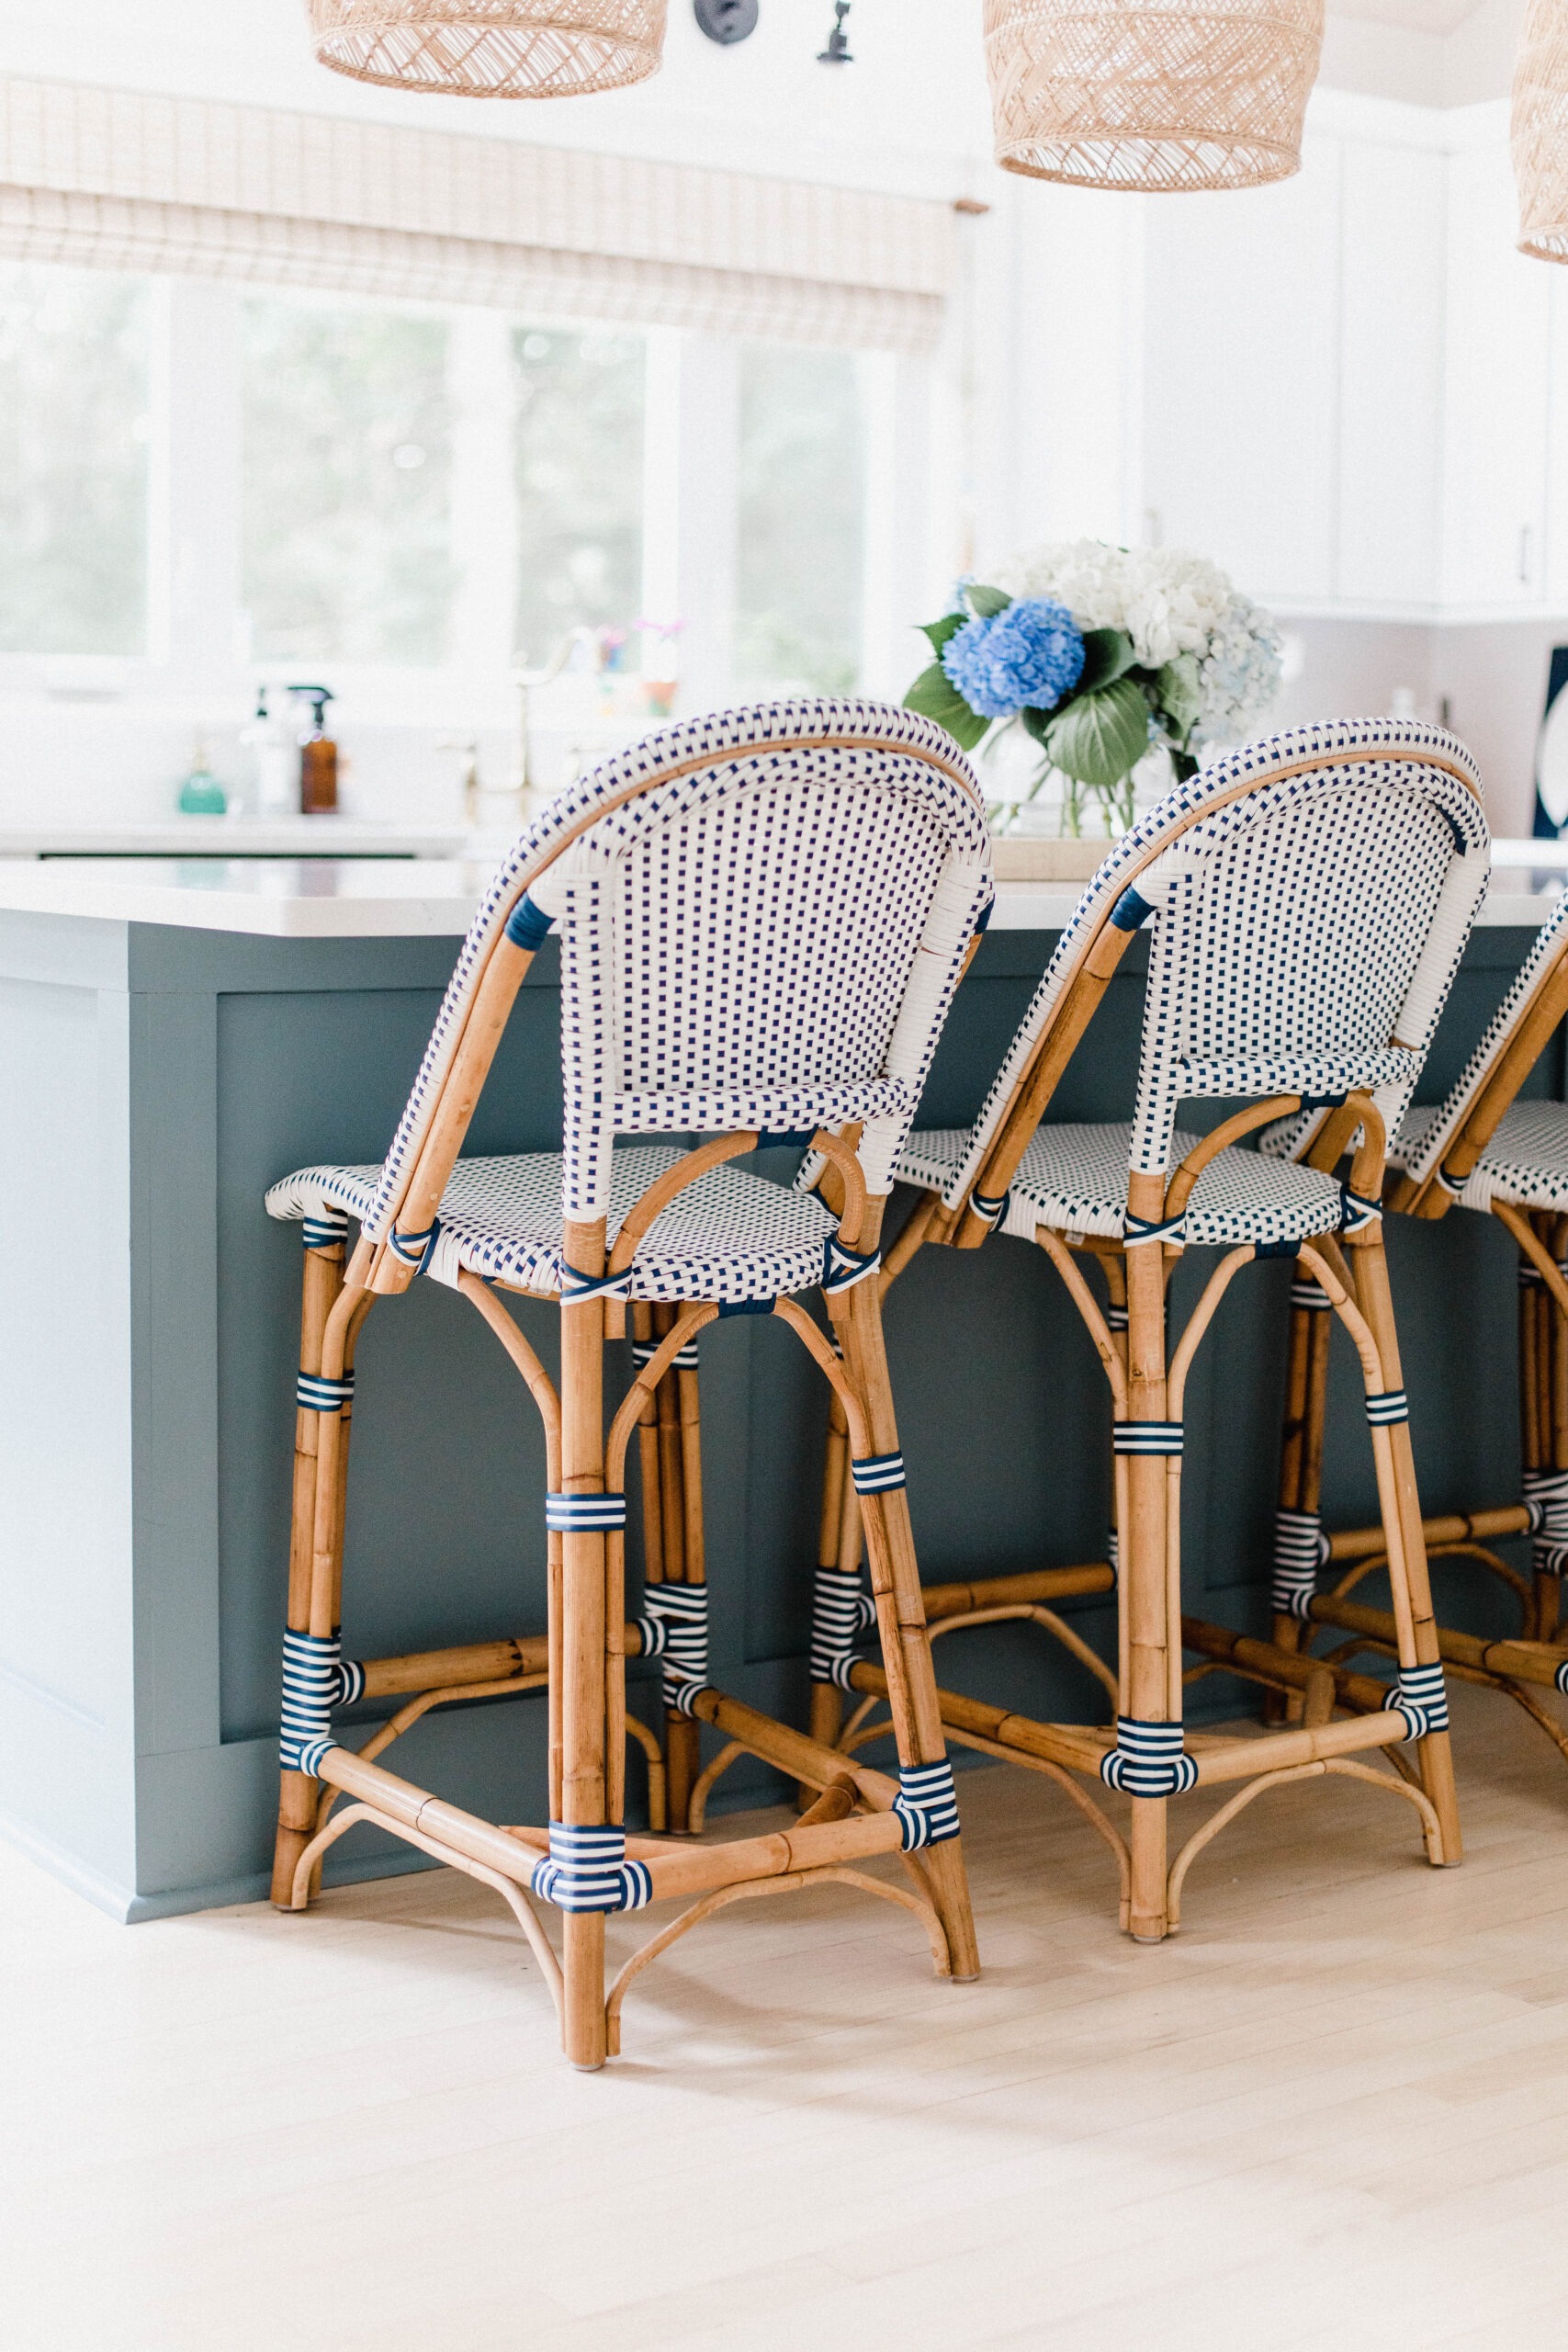 Connecticut life and style blogger Lauren McBride shares a Serena and Lily Riviera Chair Review, including comfort, durability, and more.